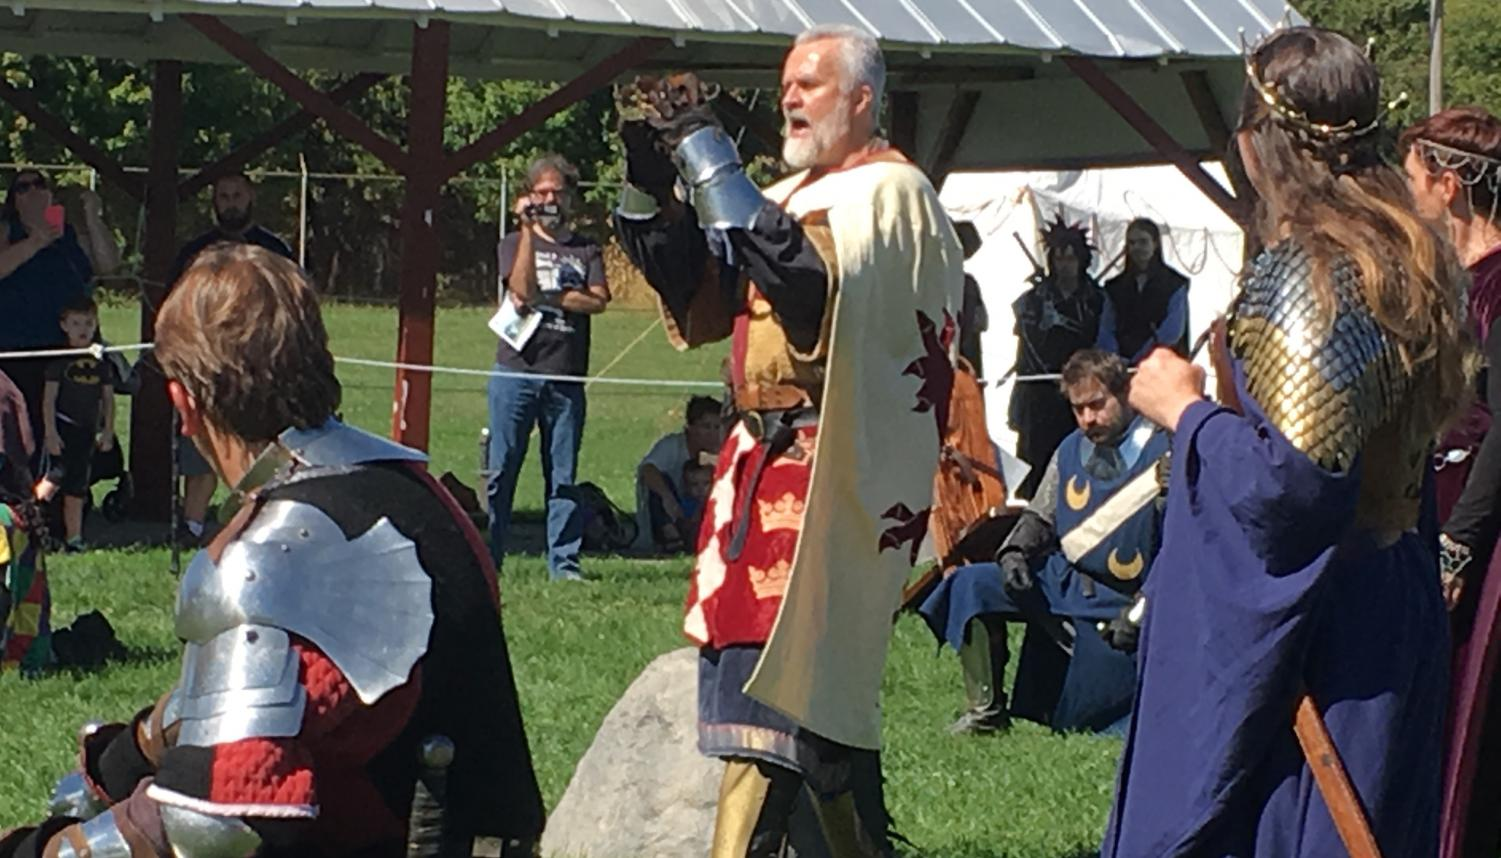 King Arthur makes a proclamation to the Saxon King Hengust for a tournament to decide who shall be King of Camelot. The Knights of the Round Table, Queen Guinevere, and others listen to the most noble Arthur as he fights for peace.    (Photo by Caila Grigoletti)